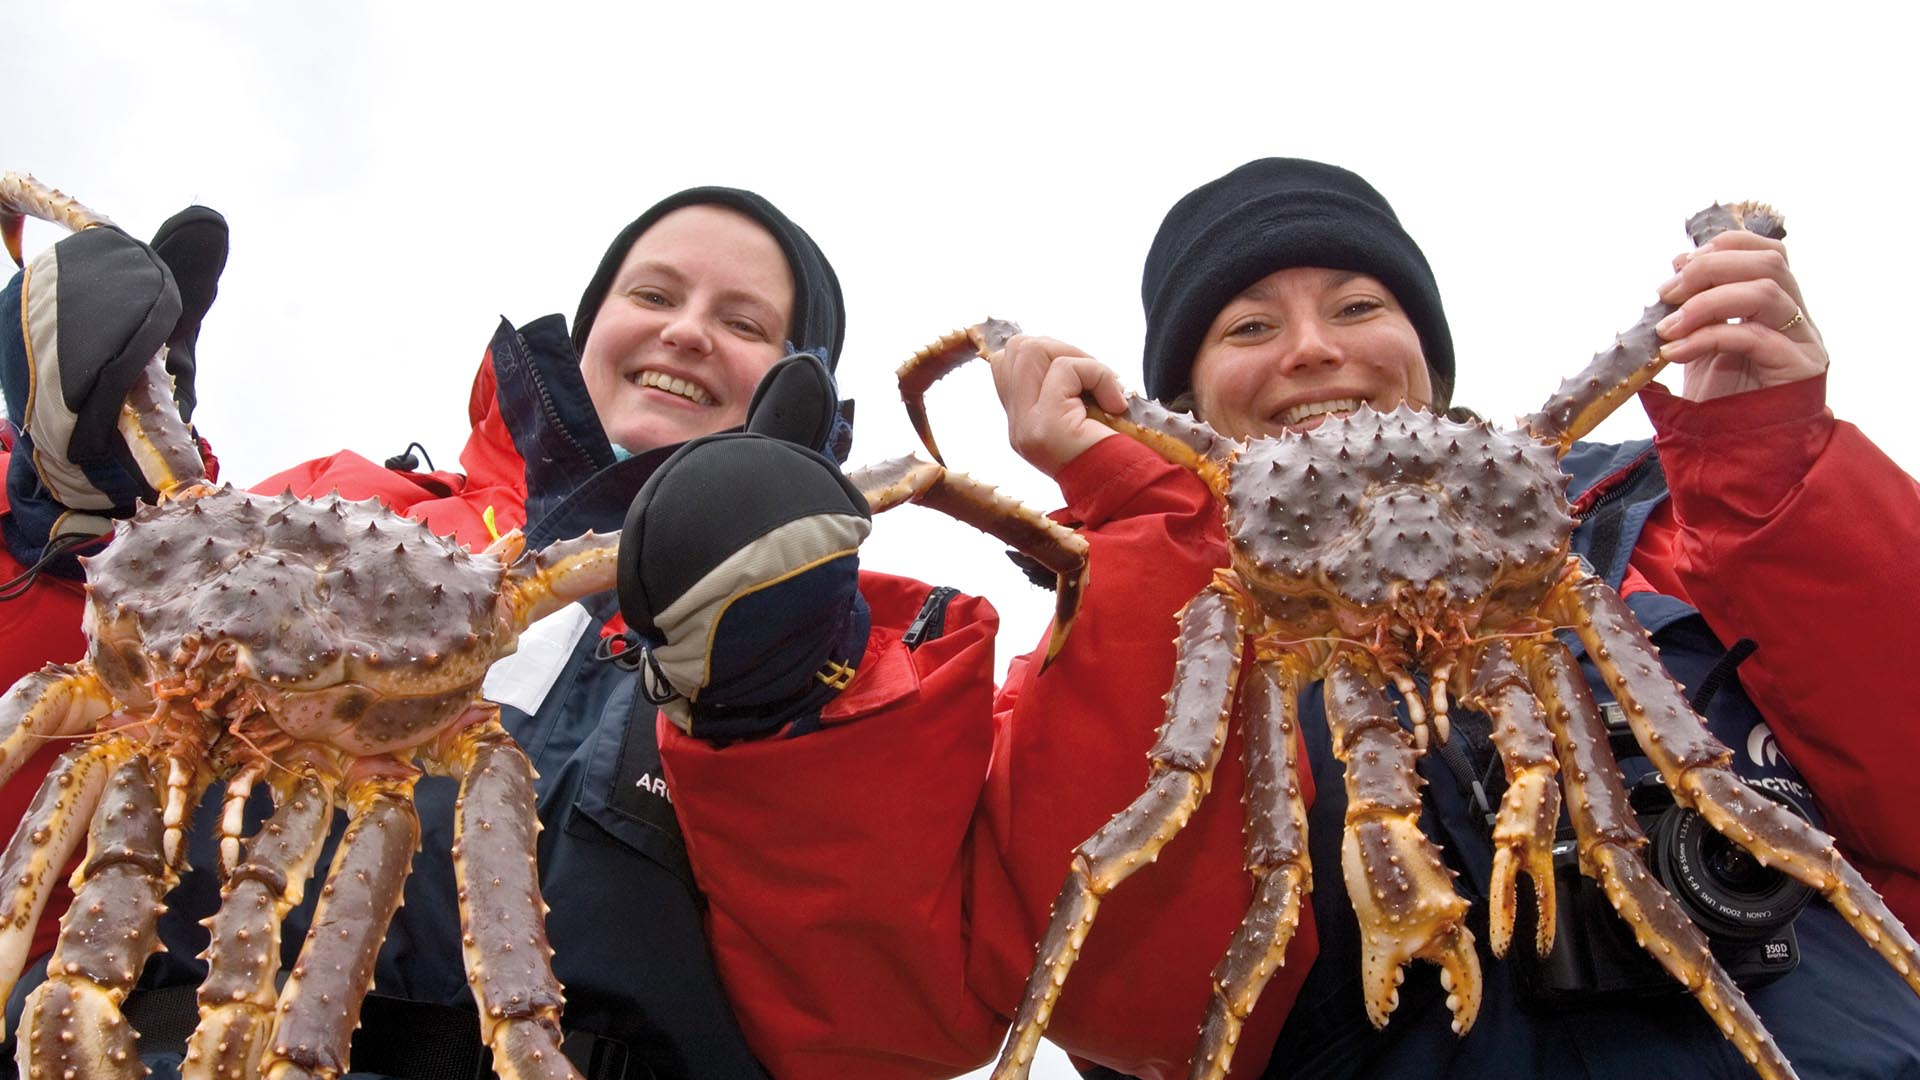 Kirkenes king crab safari